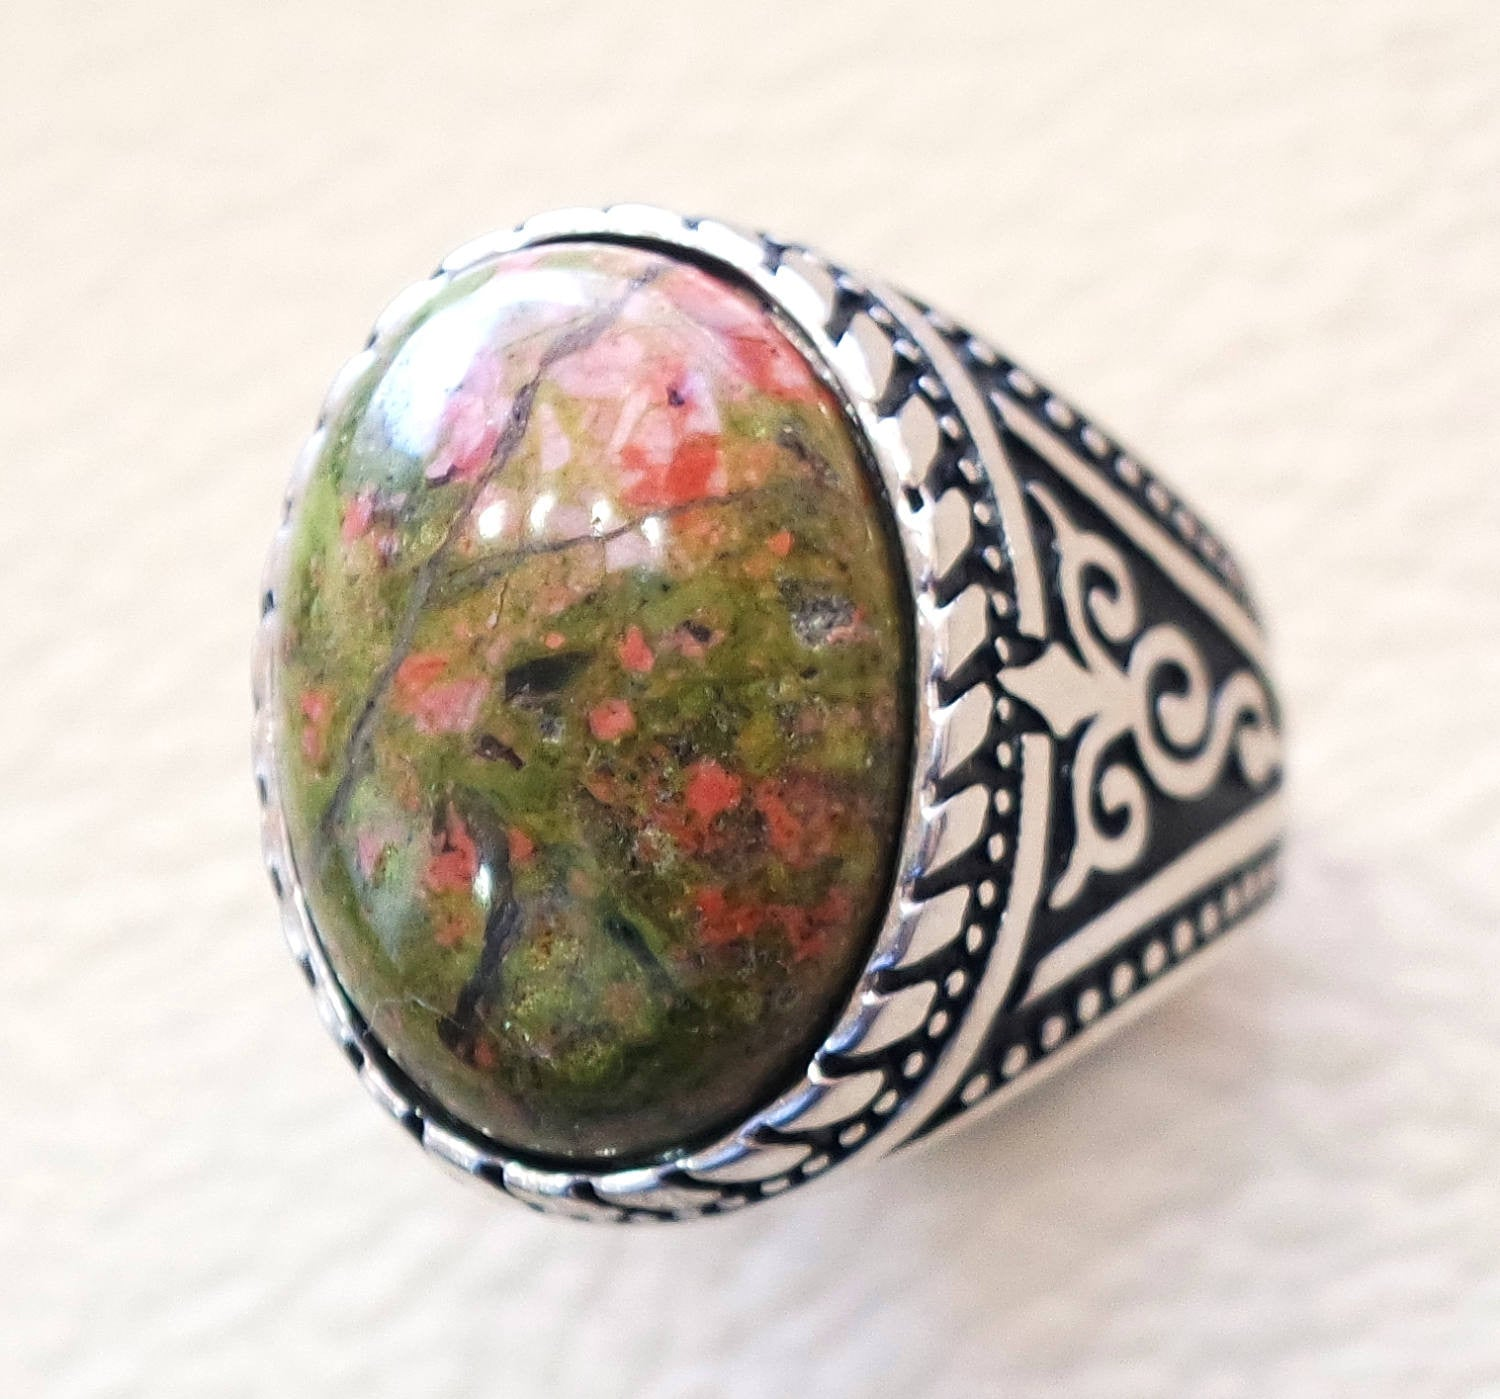 unakite men ring natural multi color stone oval cabochon sterling silver 925 high quality orange green pink semi precious jewelry